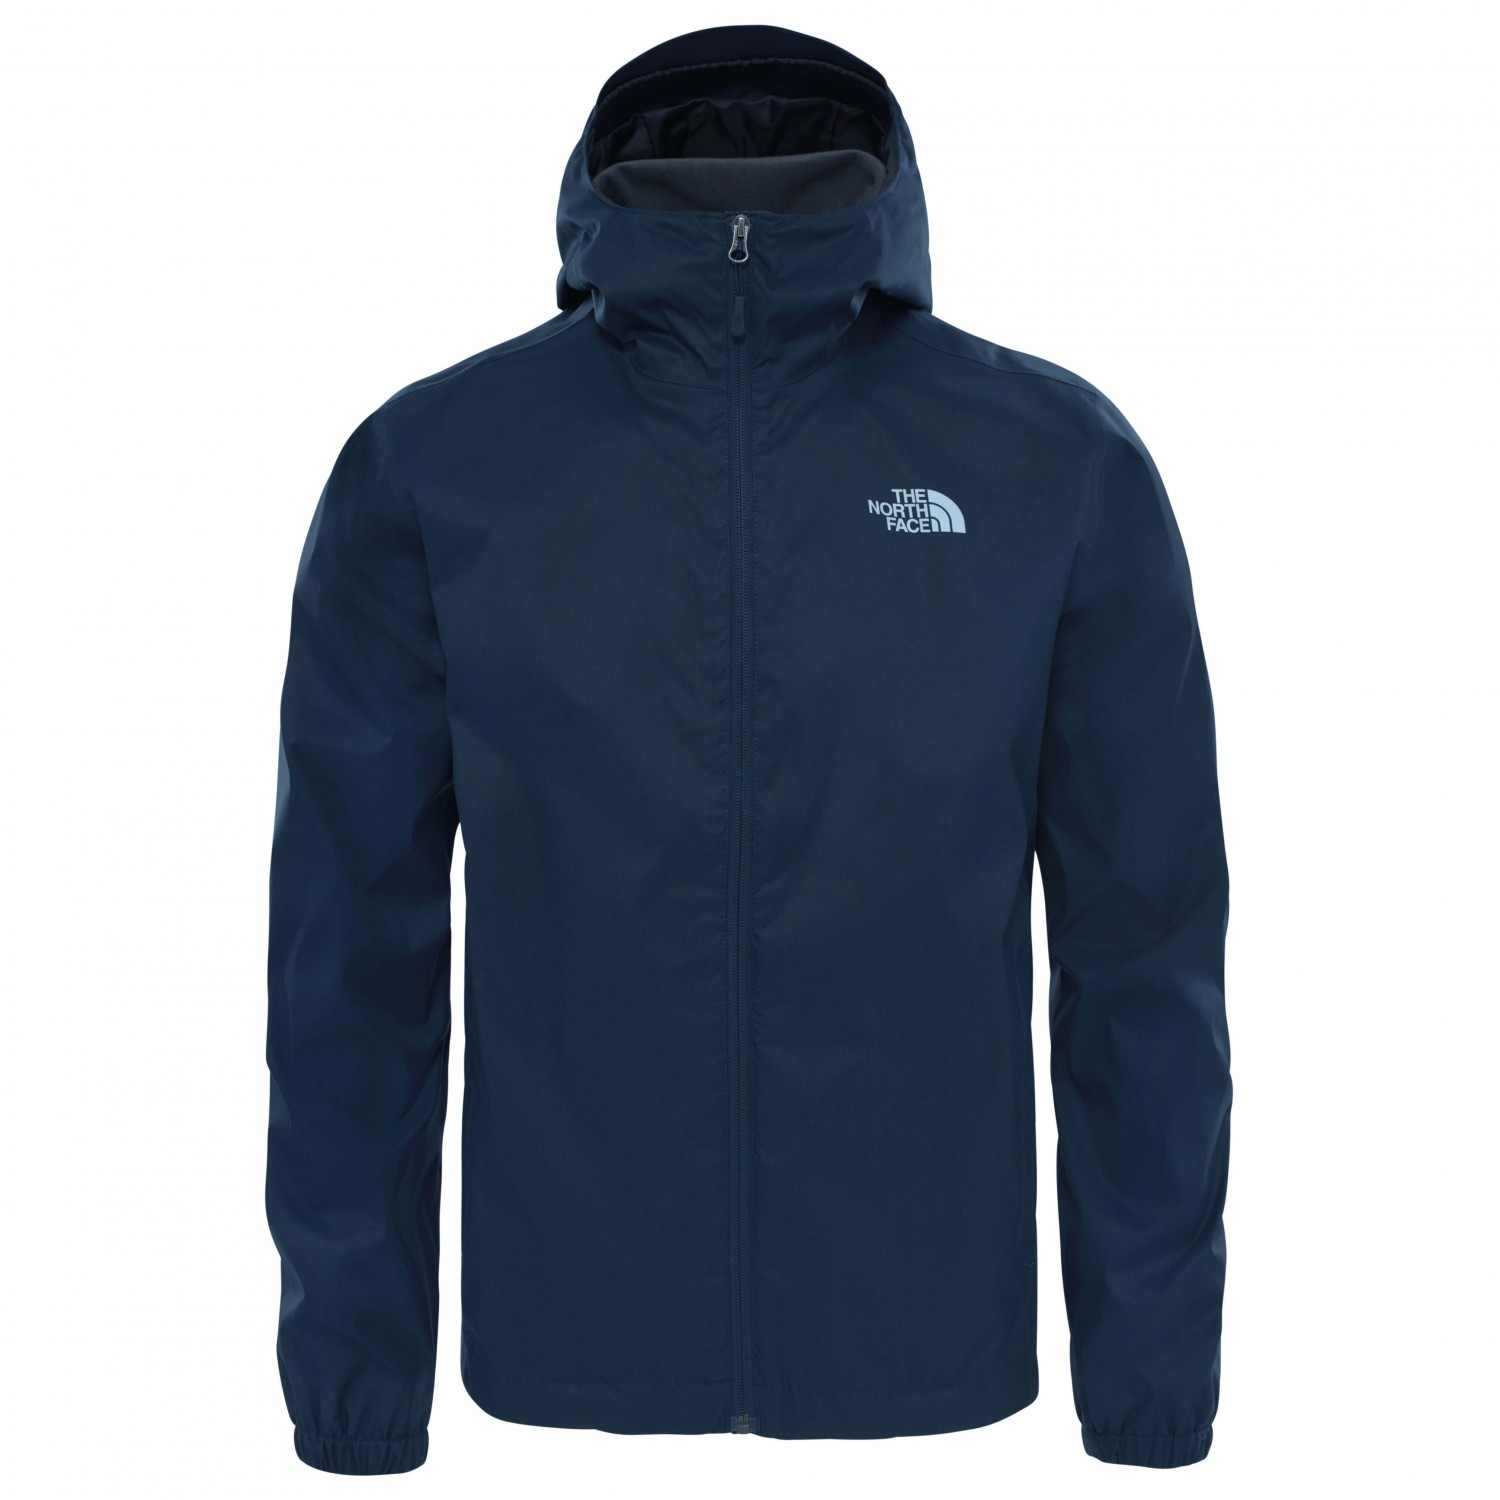 competitive price 85cb7 4f563 The North Face Quest Jacket - Hardshelljacke Herren ...